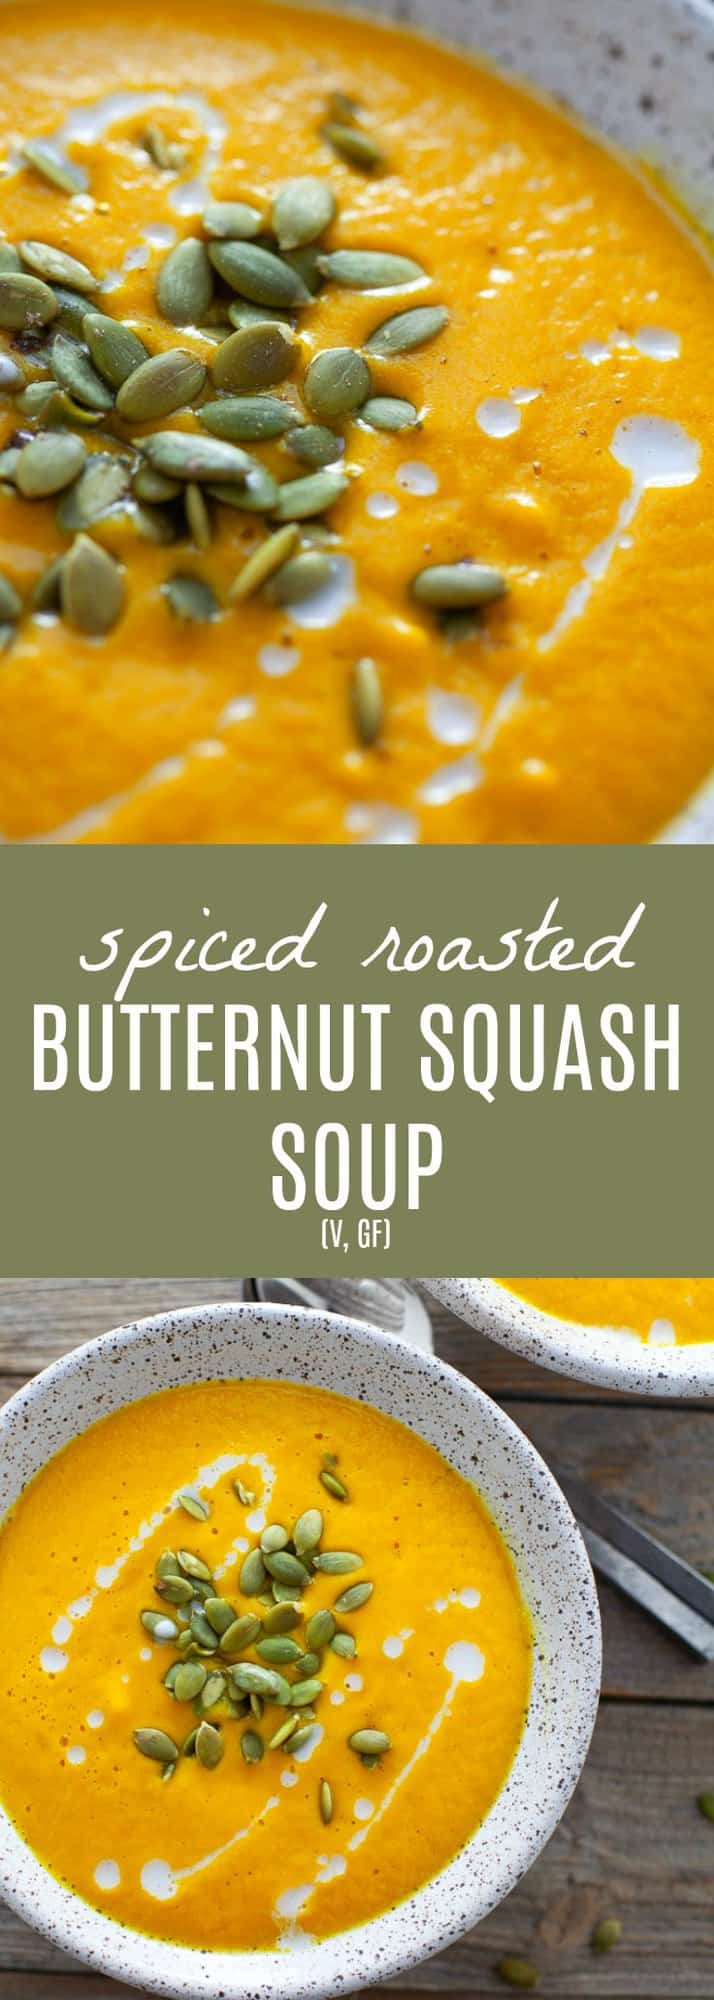 The perfect starter for the holidays, this vegan spiced roasted butternut squash soup is super creamy and has a hint of warming spice from cardamom. Easy to make in a high-speed blender or on the stove-top! #butternutsqaush #vegan #soup